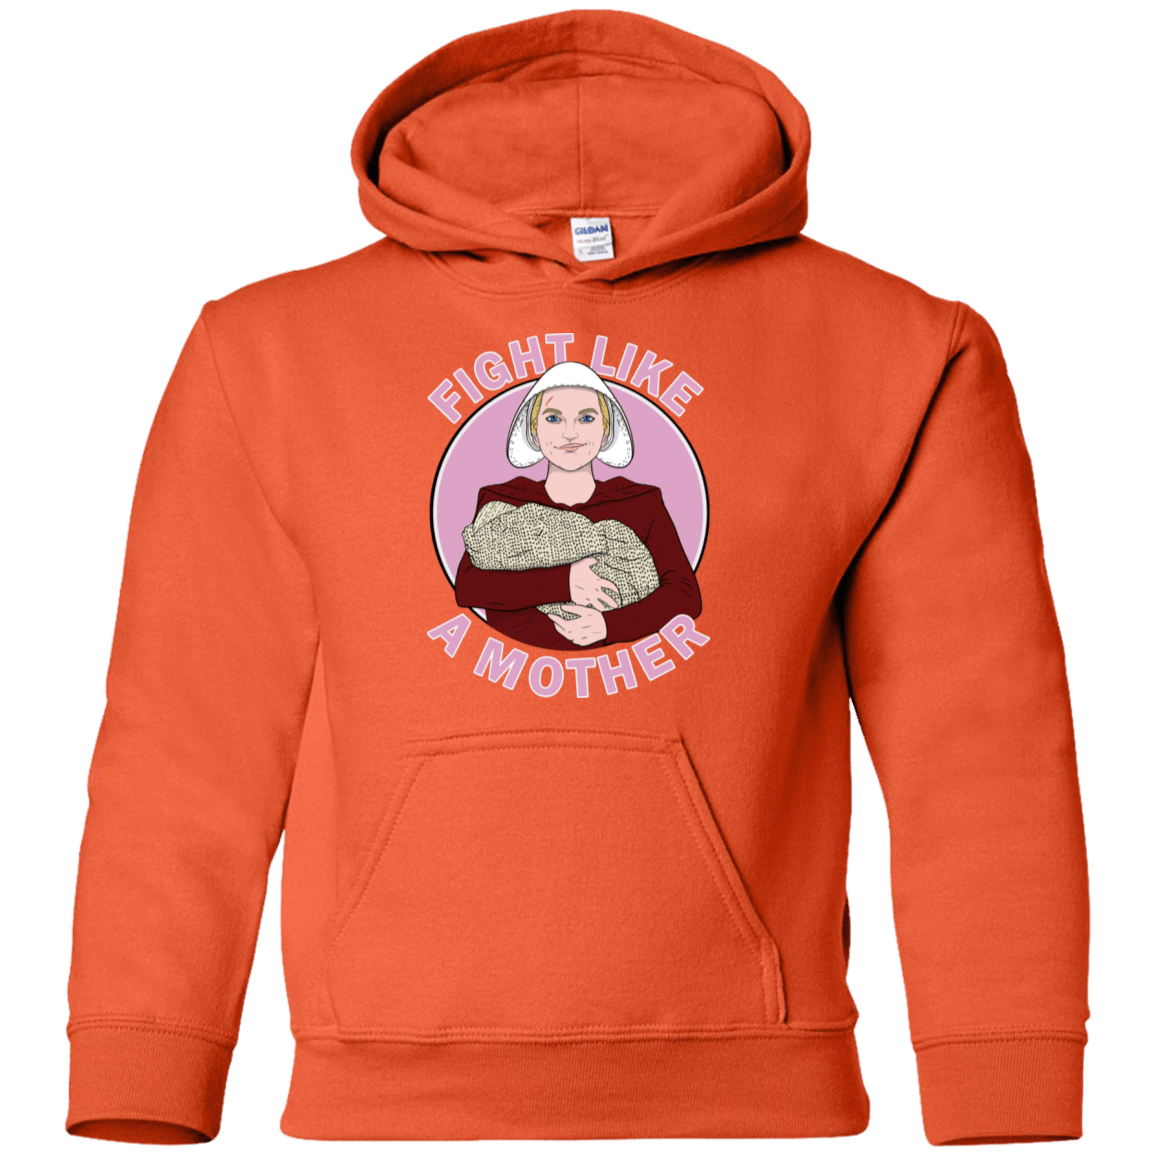 Sweatshirts Orange / YS Fight Like a Mother Youth Hoodie